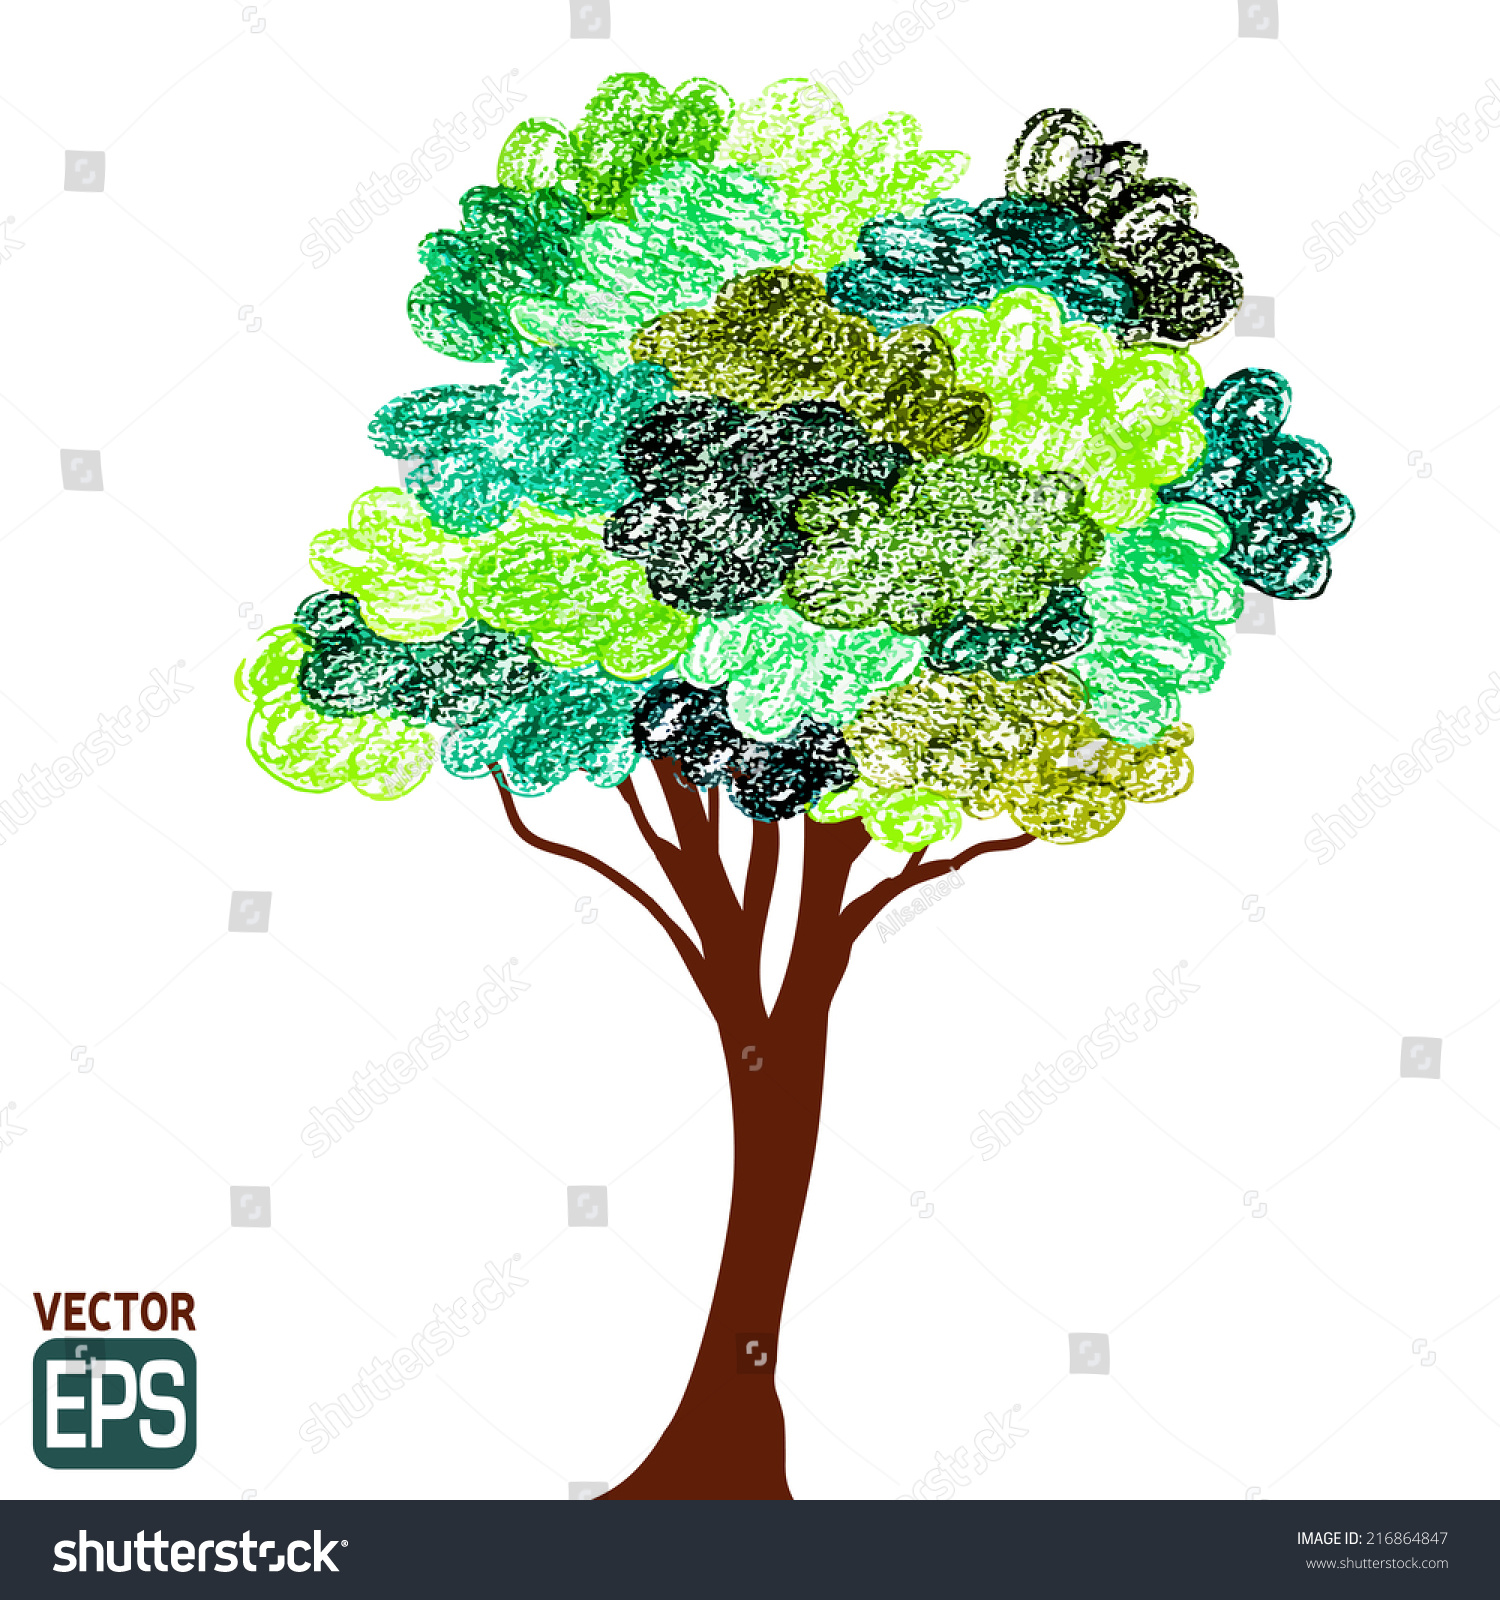 Color Pencils Drawings Tree Background Vector Stock Vector (Royalty ...